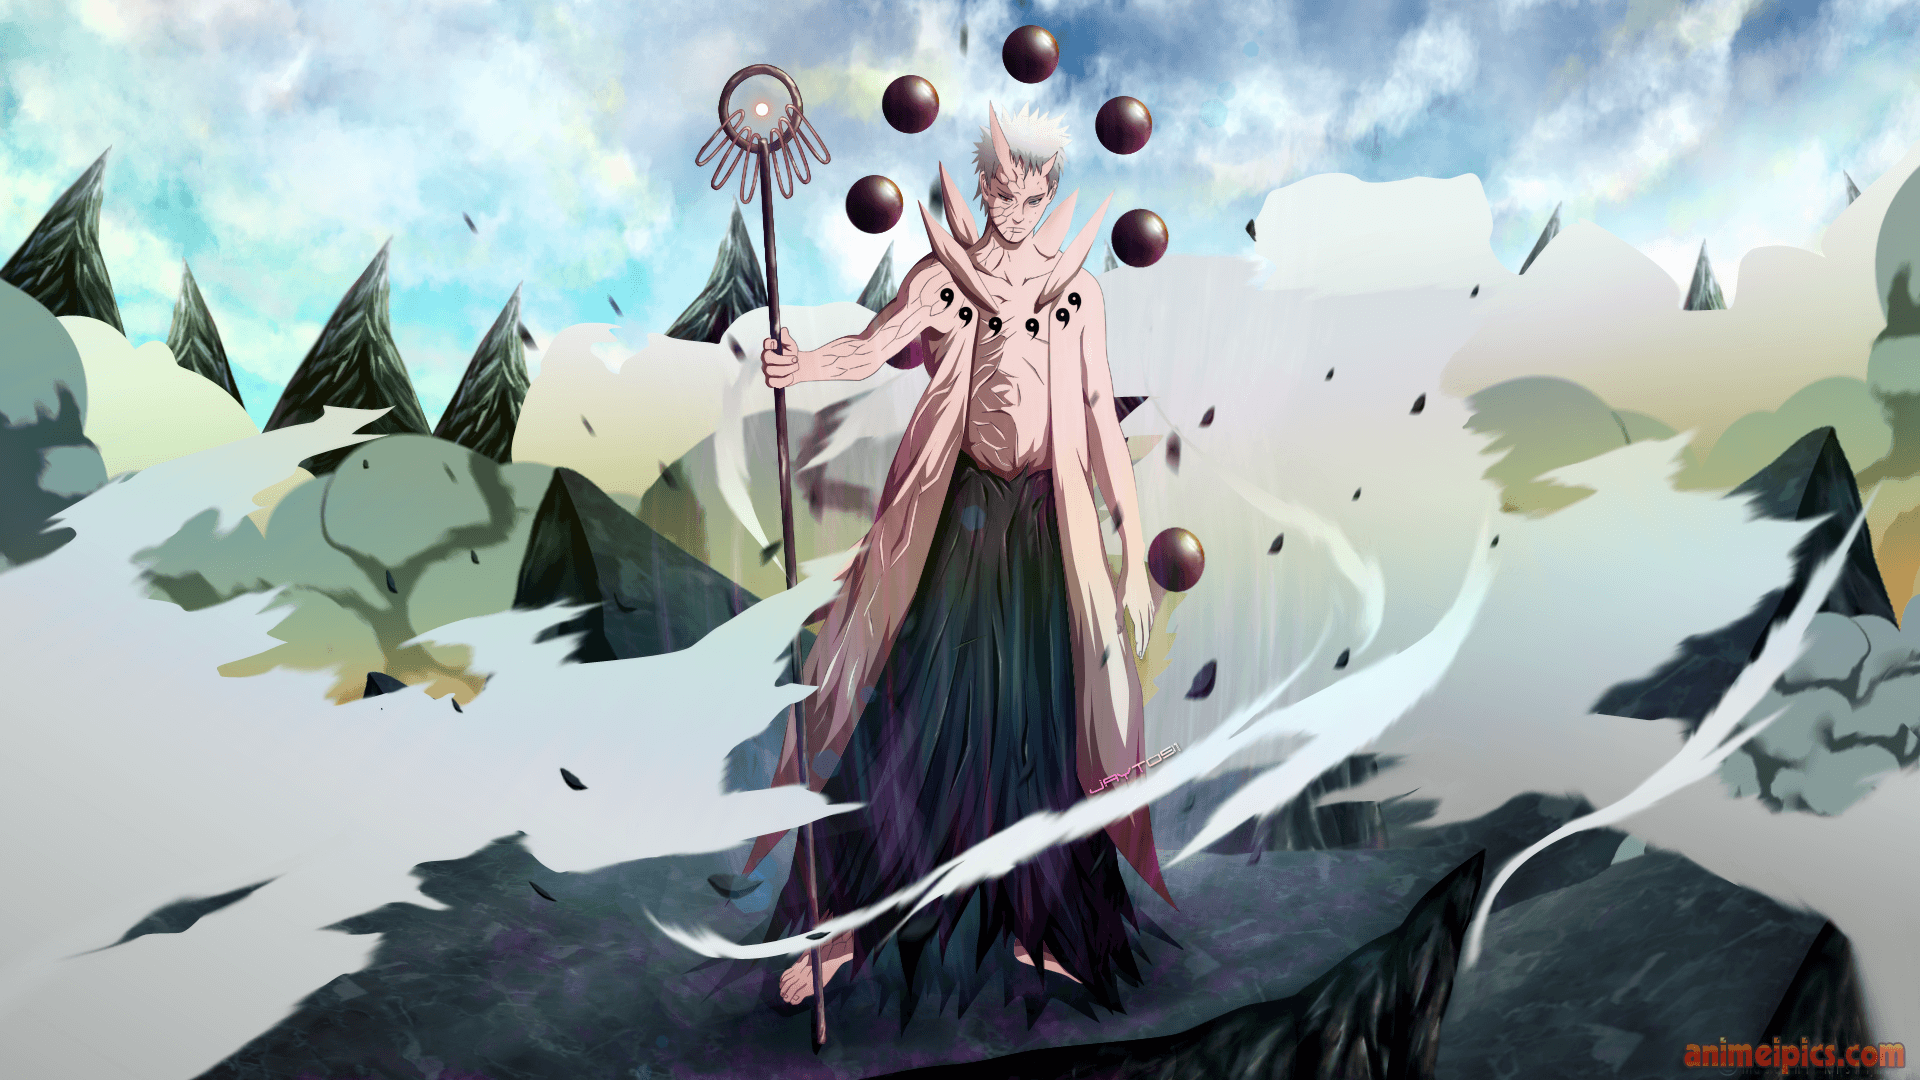 Rikudou Sennin Wallpapers Wallpaper Cave